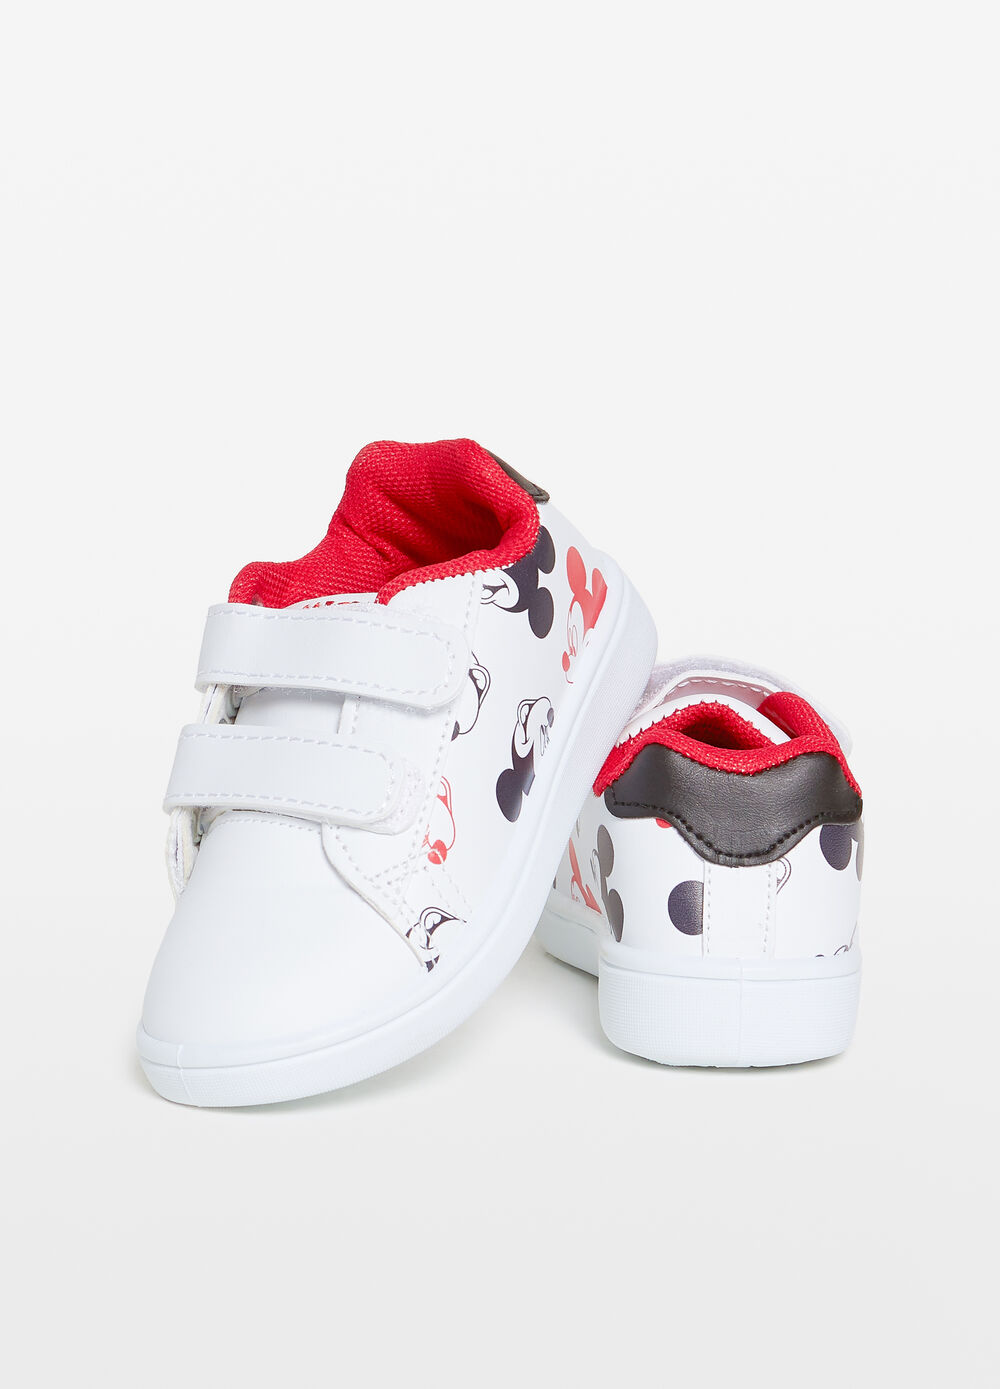 Mickey Mouse patterned sneakers